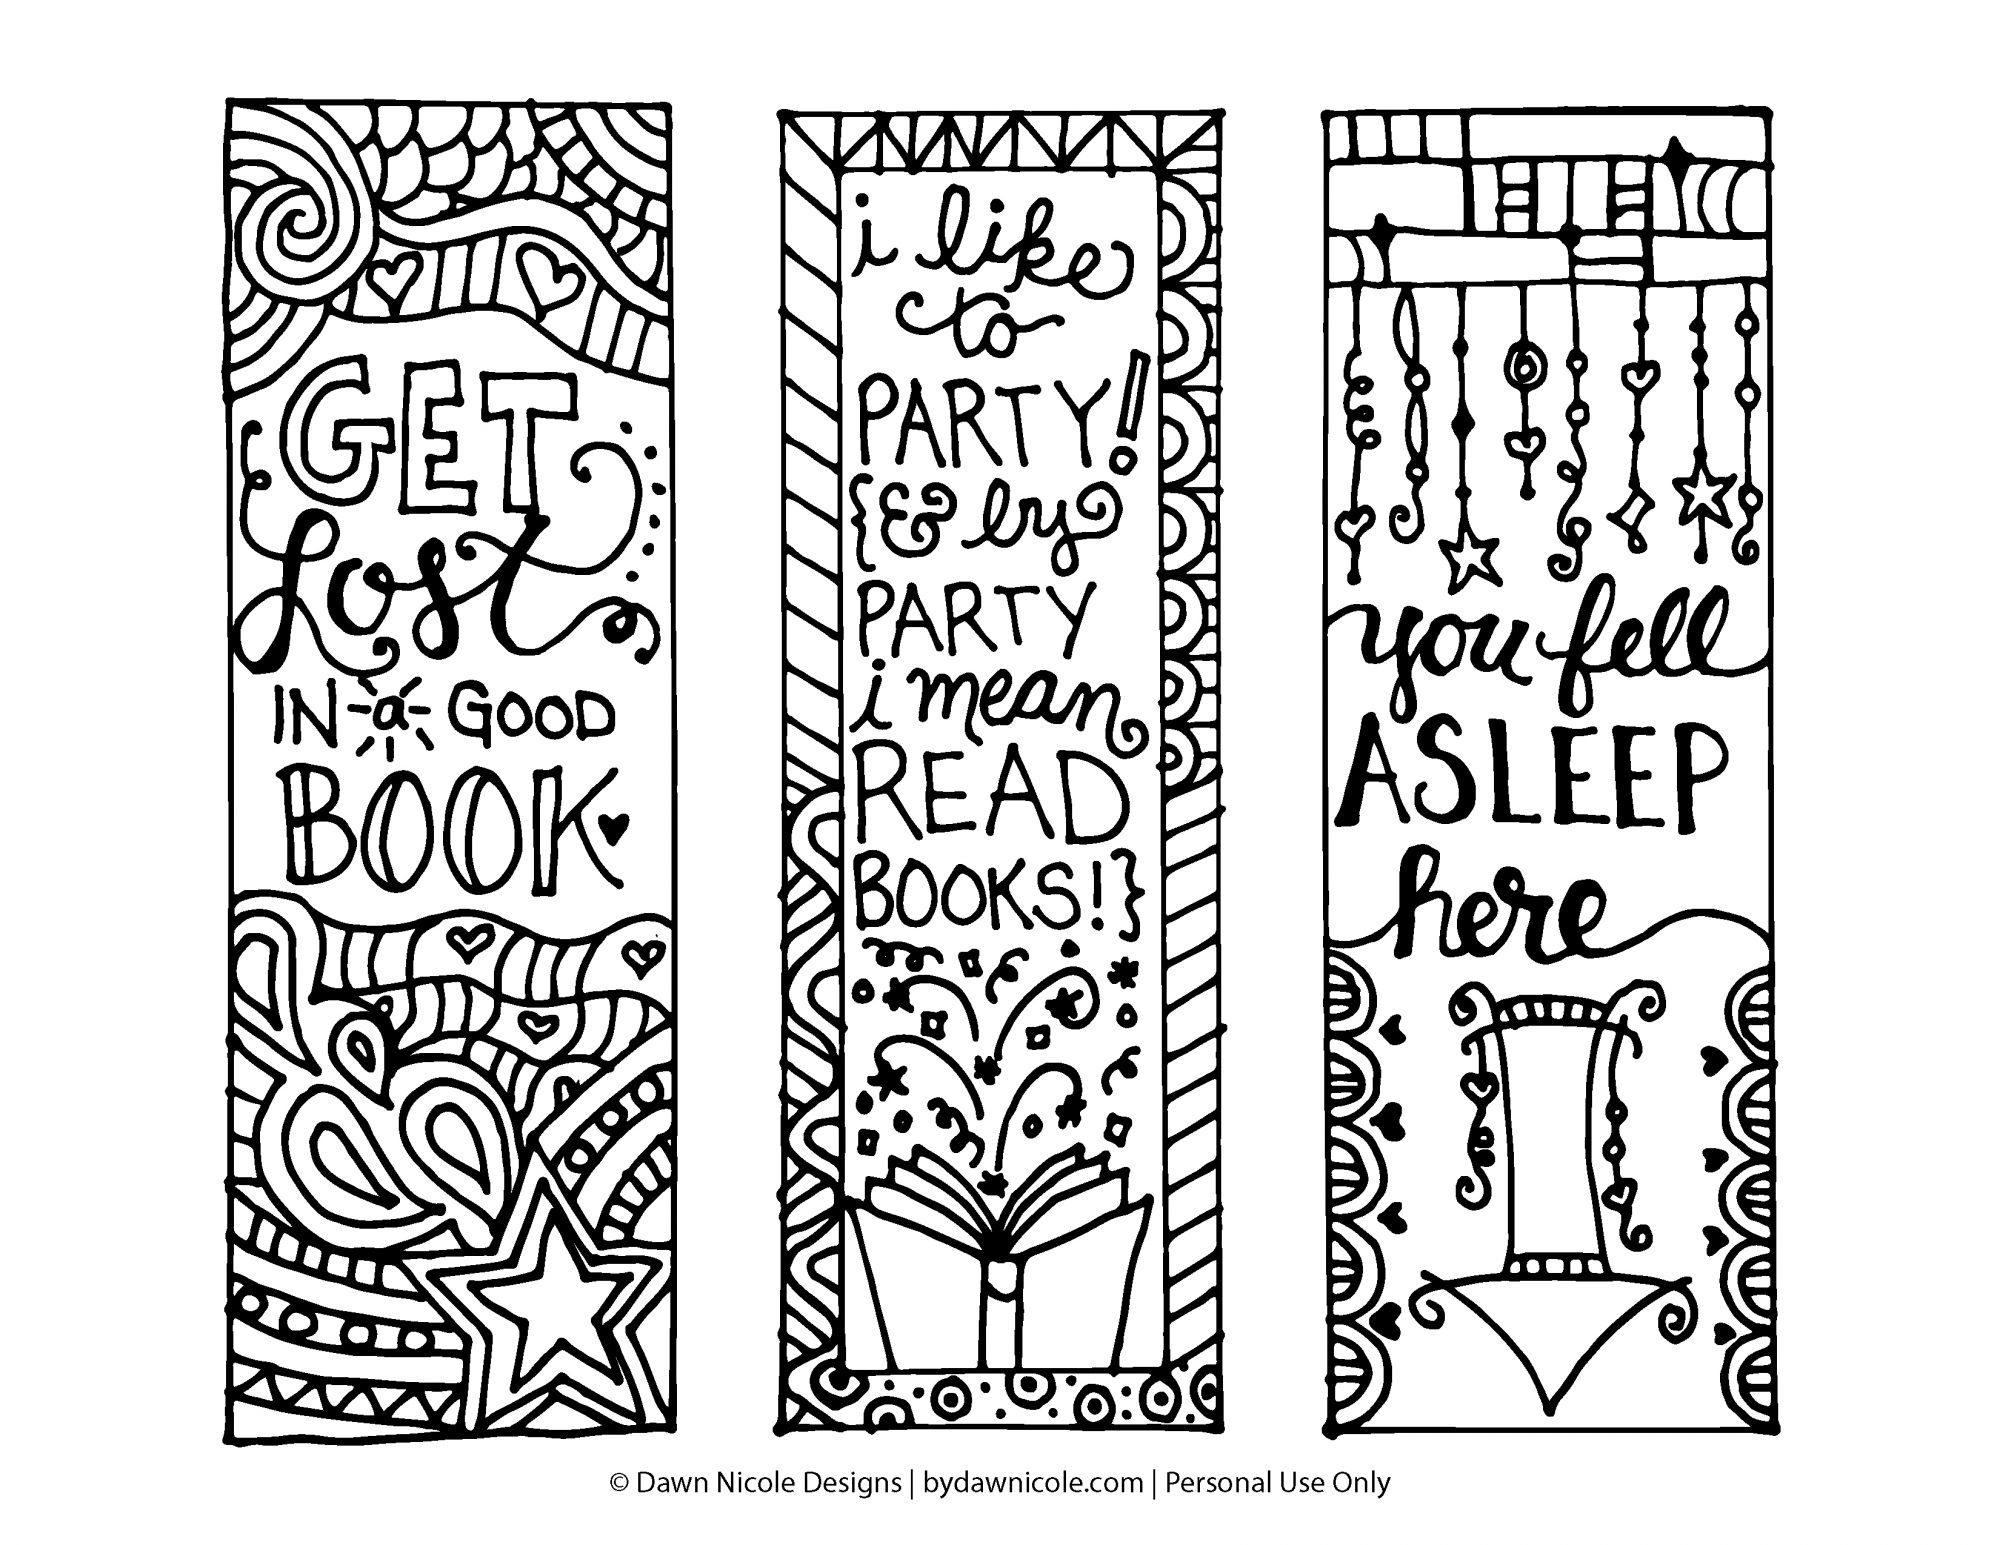 Free Printable Coloring Page Bookmarks | Dawn Nicole Designs® - Free Printable Sports Bookmarks